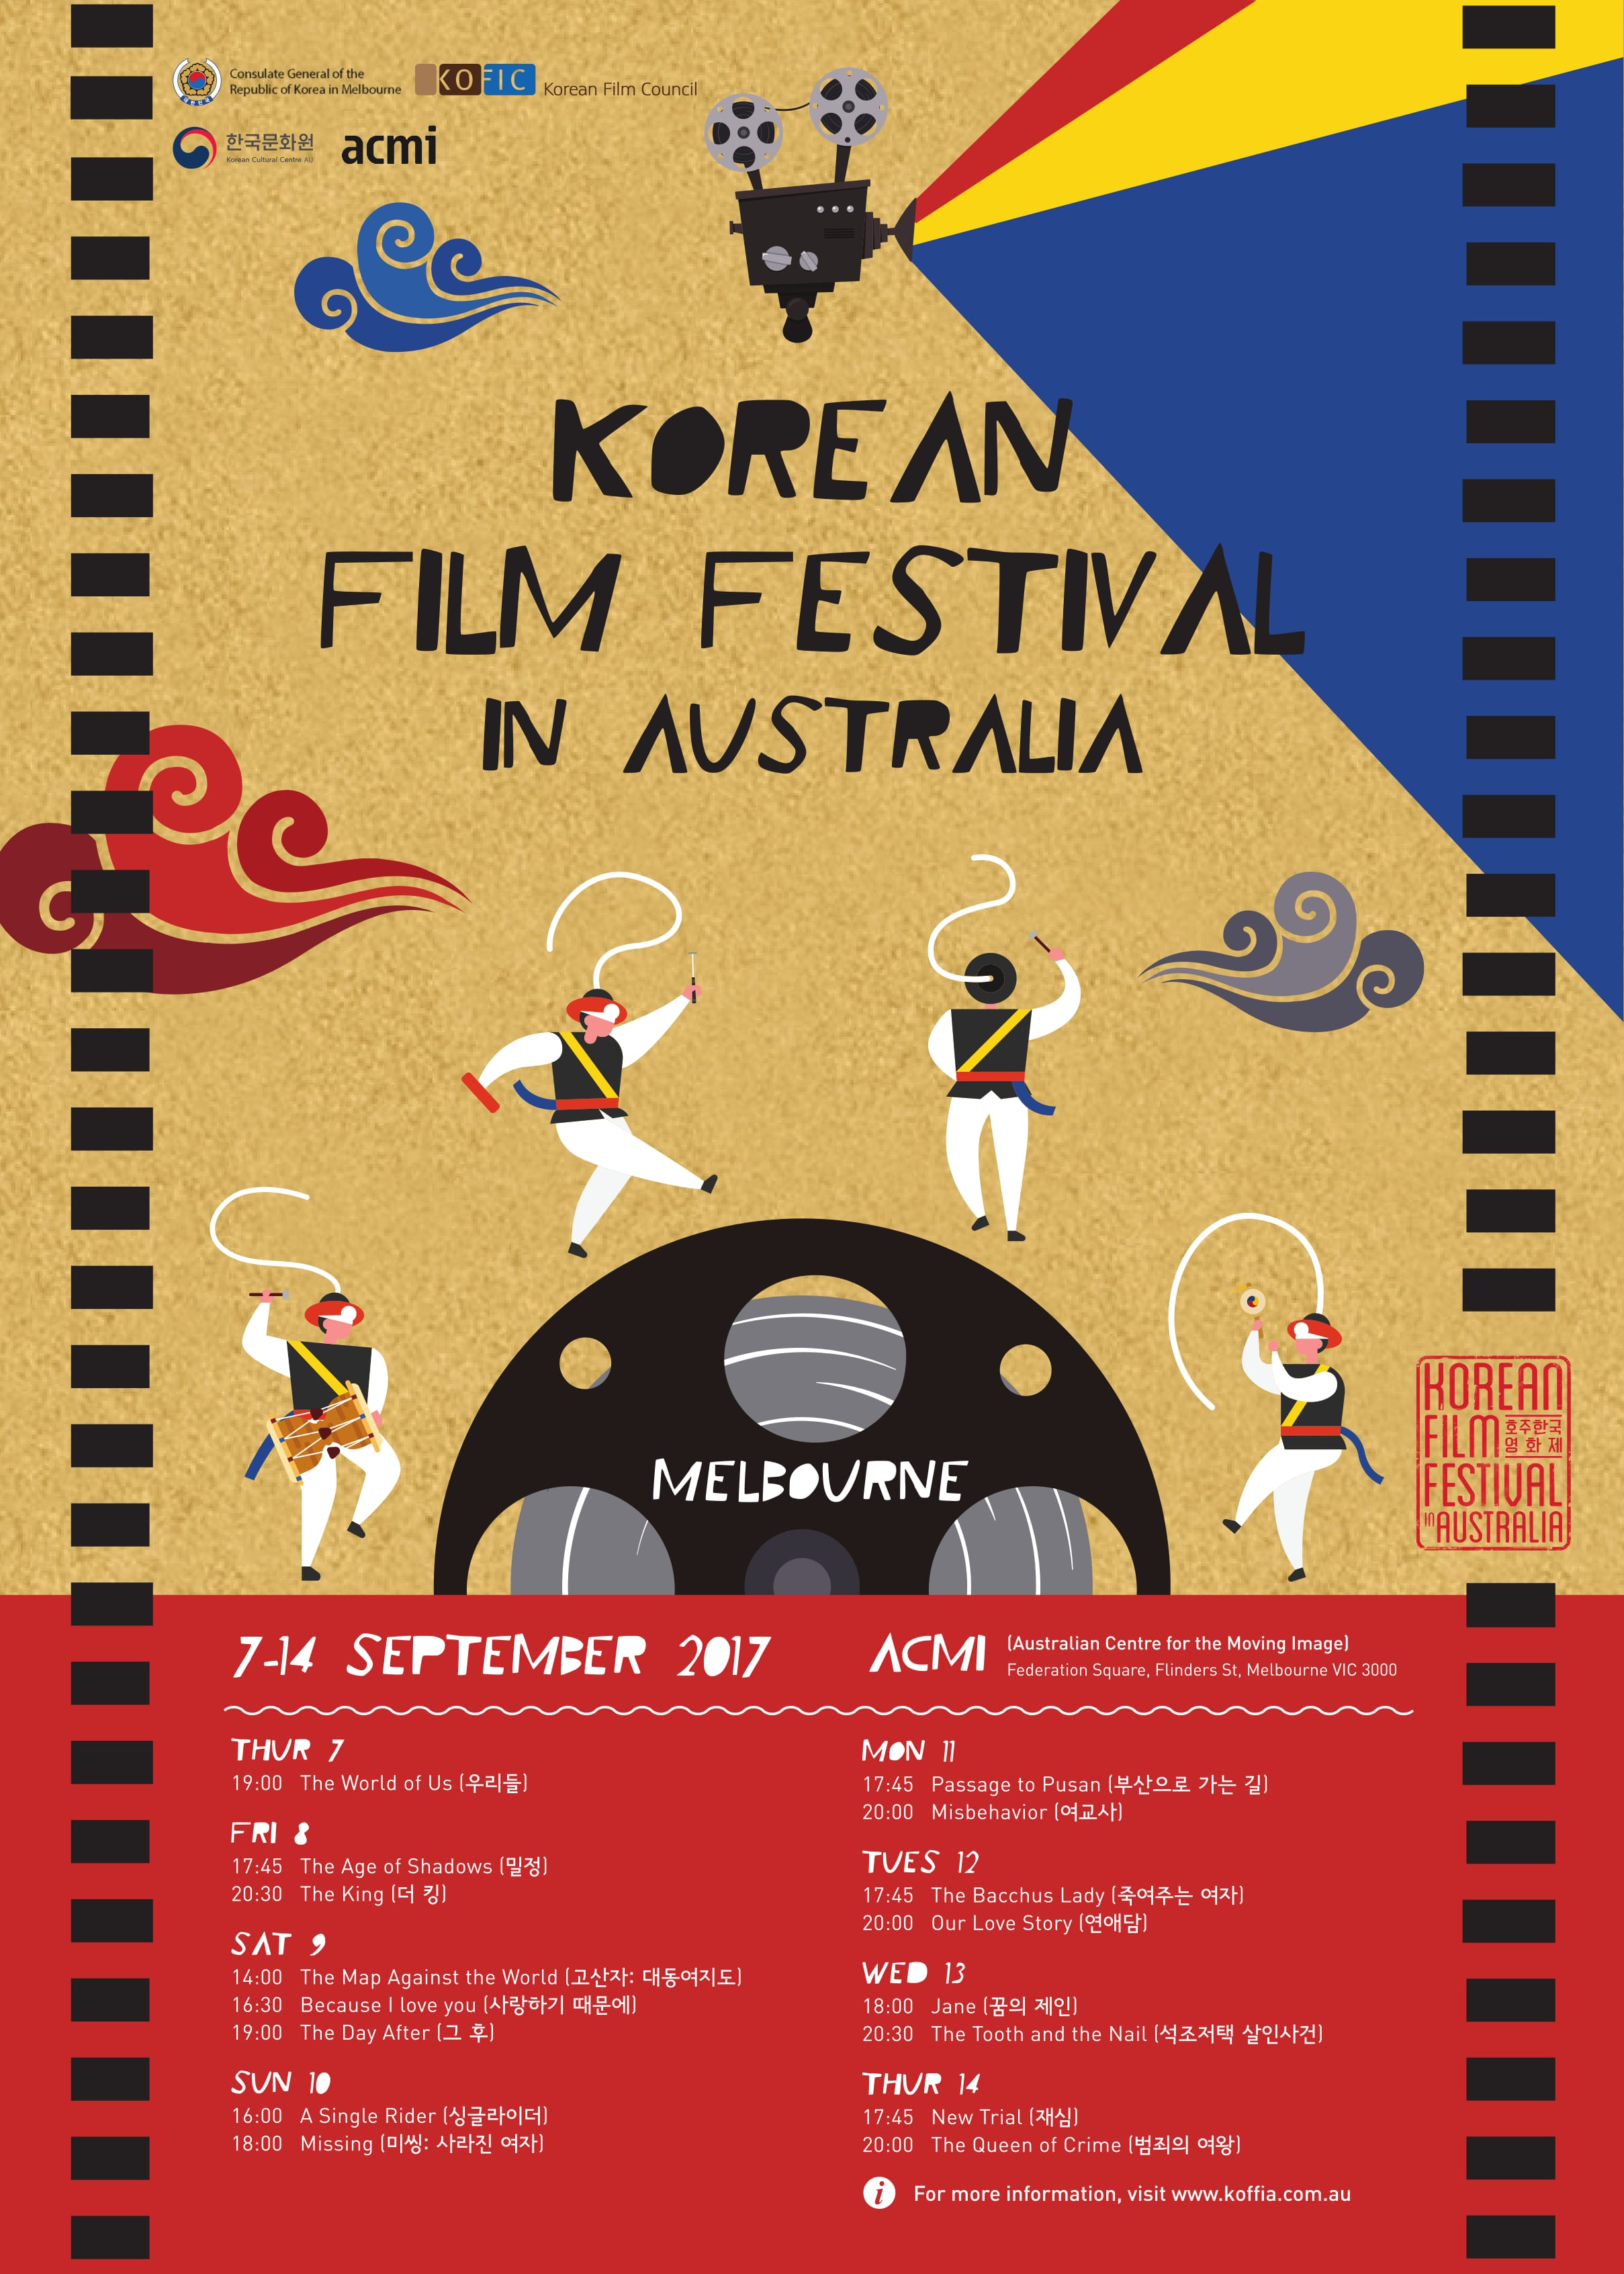 Korean Film Festival in Australia (KOFFIA) 2017 poster